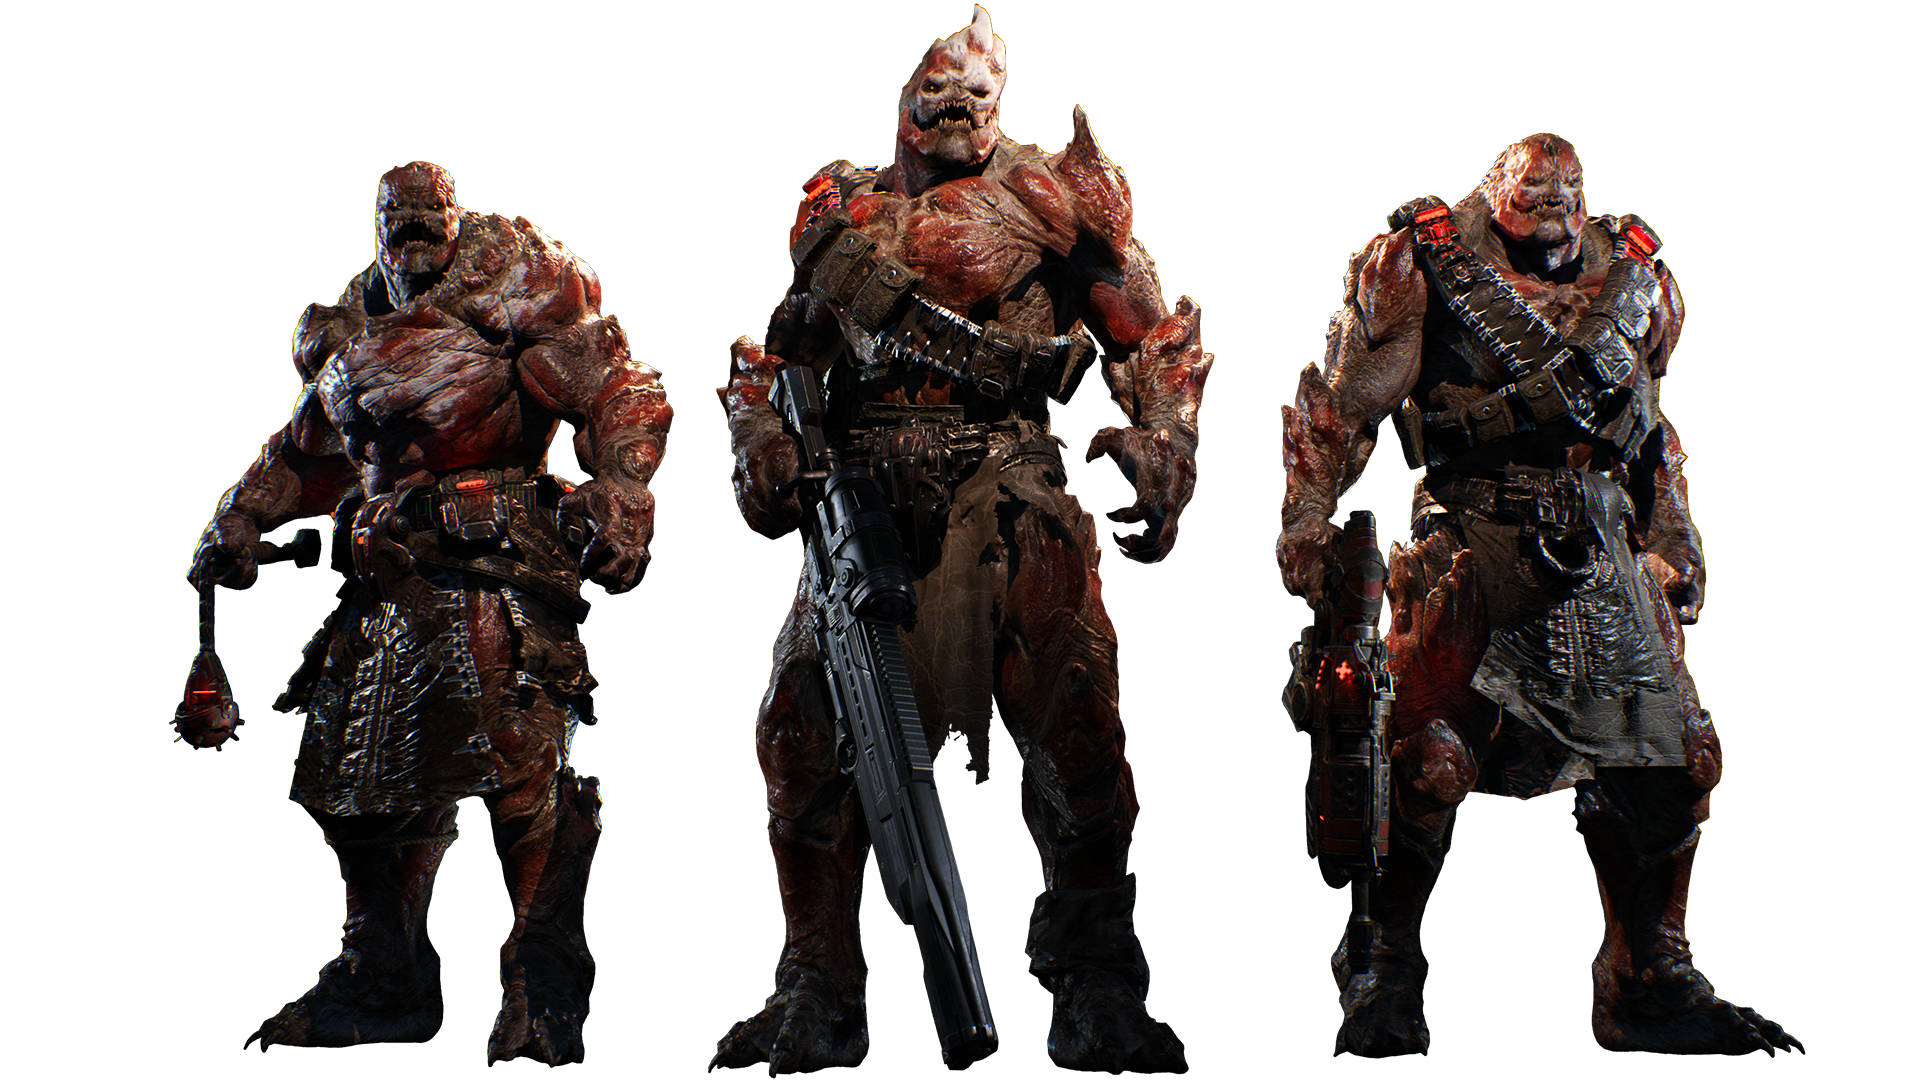 Gears-of-War-4_Character_Drone-Lineup.png1920x1080 2.1 MB - Gears Of War PNG